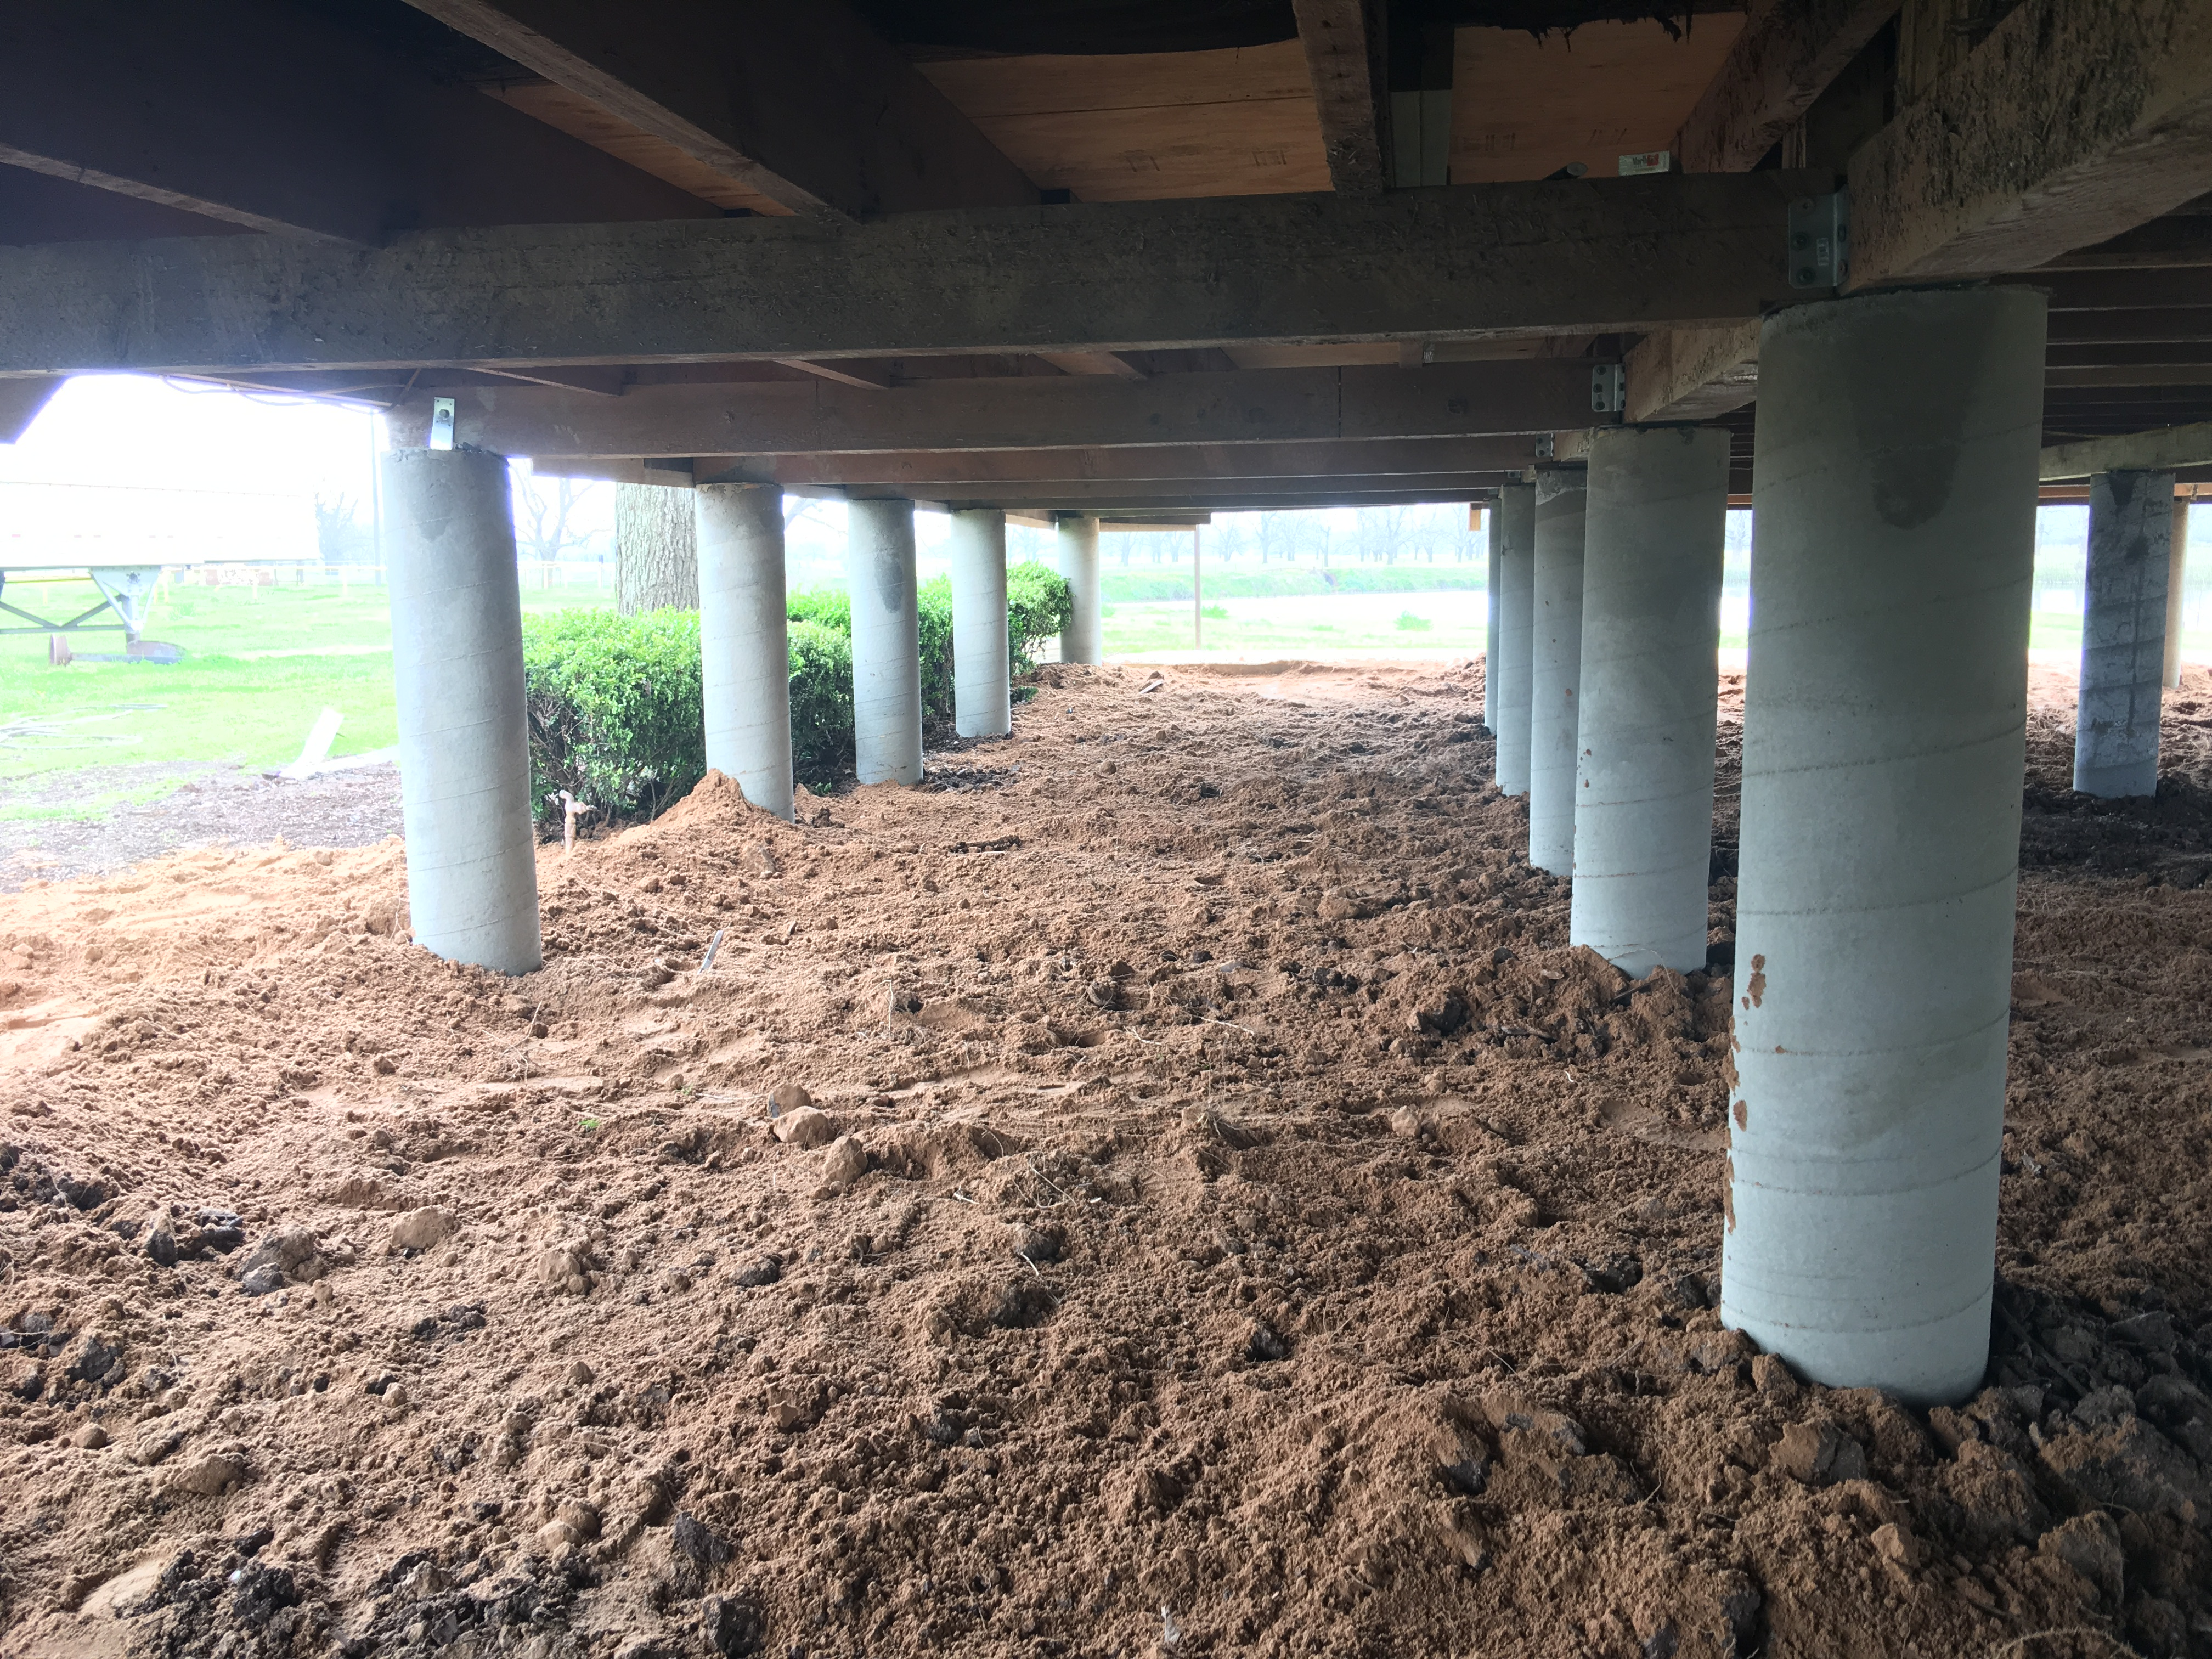 Pier and Beam Foundation Repair - Coastal Bend Foundation Repair